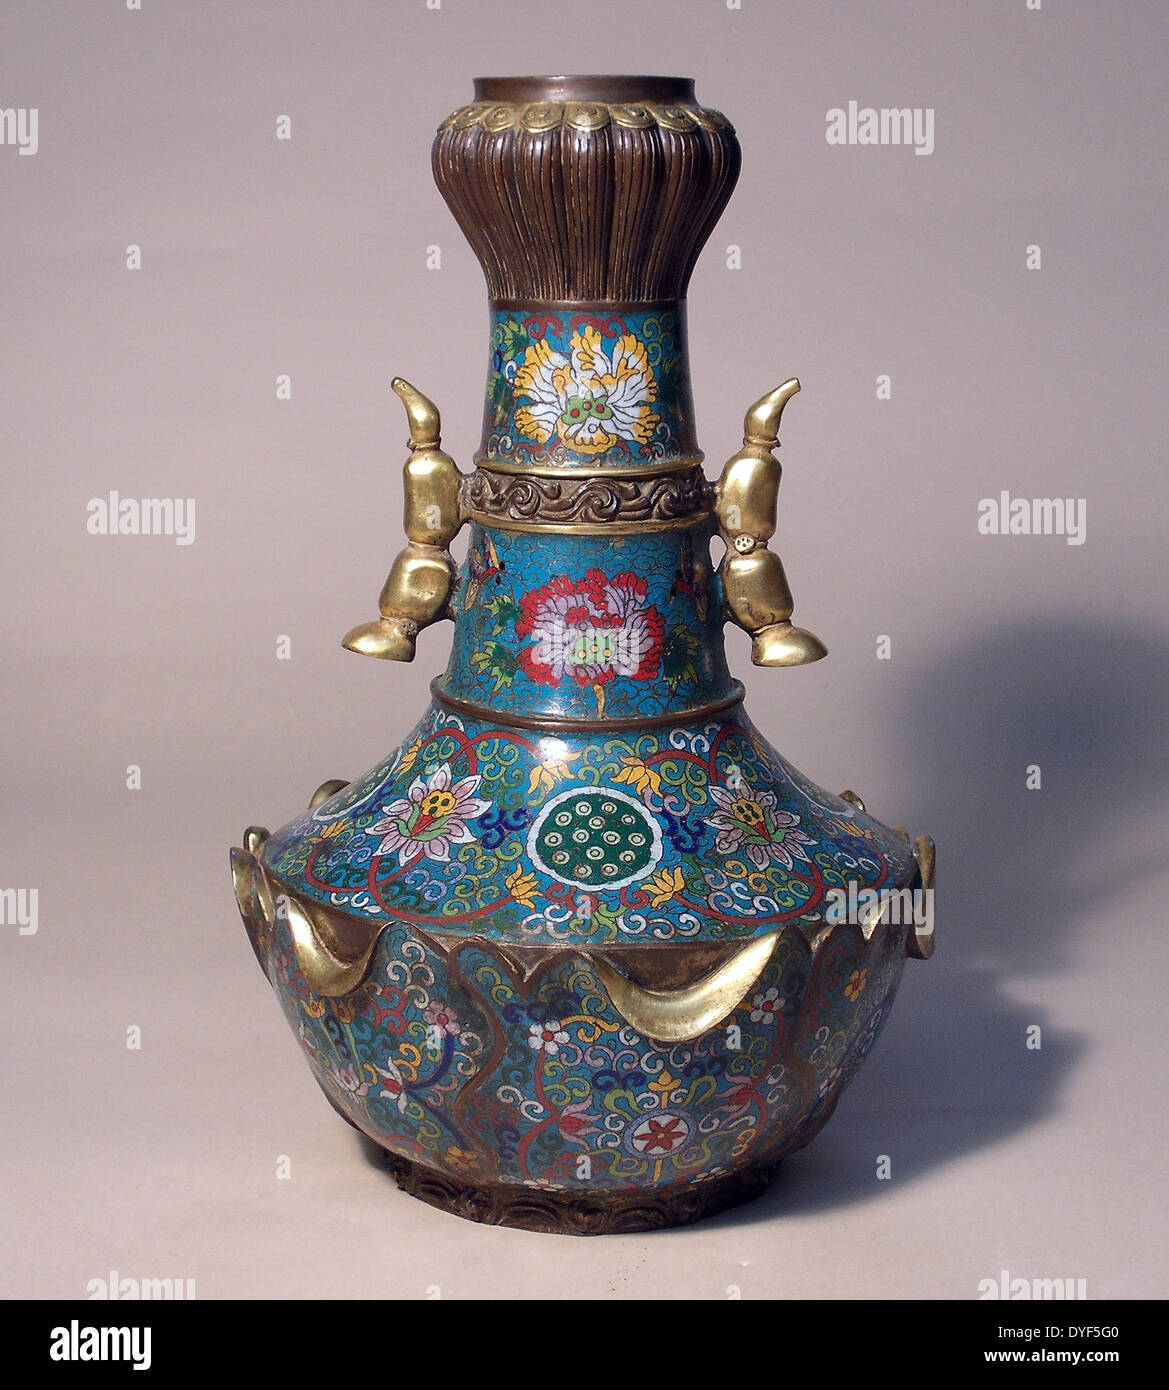 Ancient china water lily vase with two handles ming dynasty ancient china water lily vase with two handles ming dynasty jingtai period 1450 1456 ad gilt cloisonne enamel and reviewsmspy